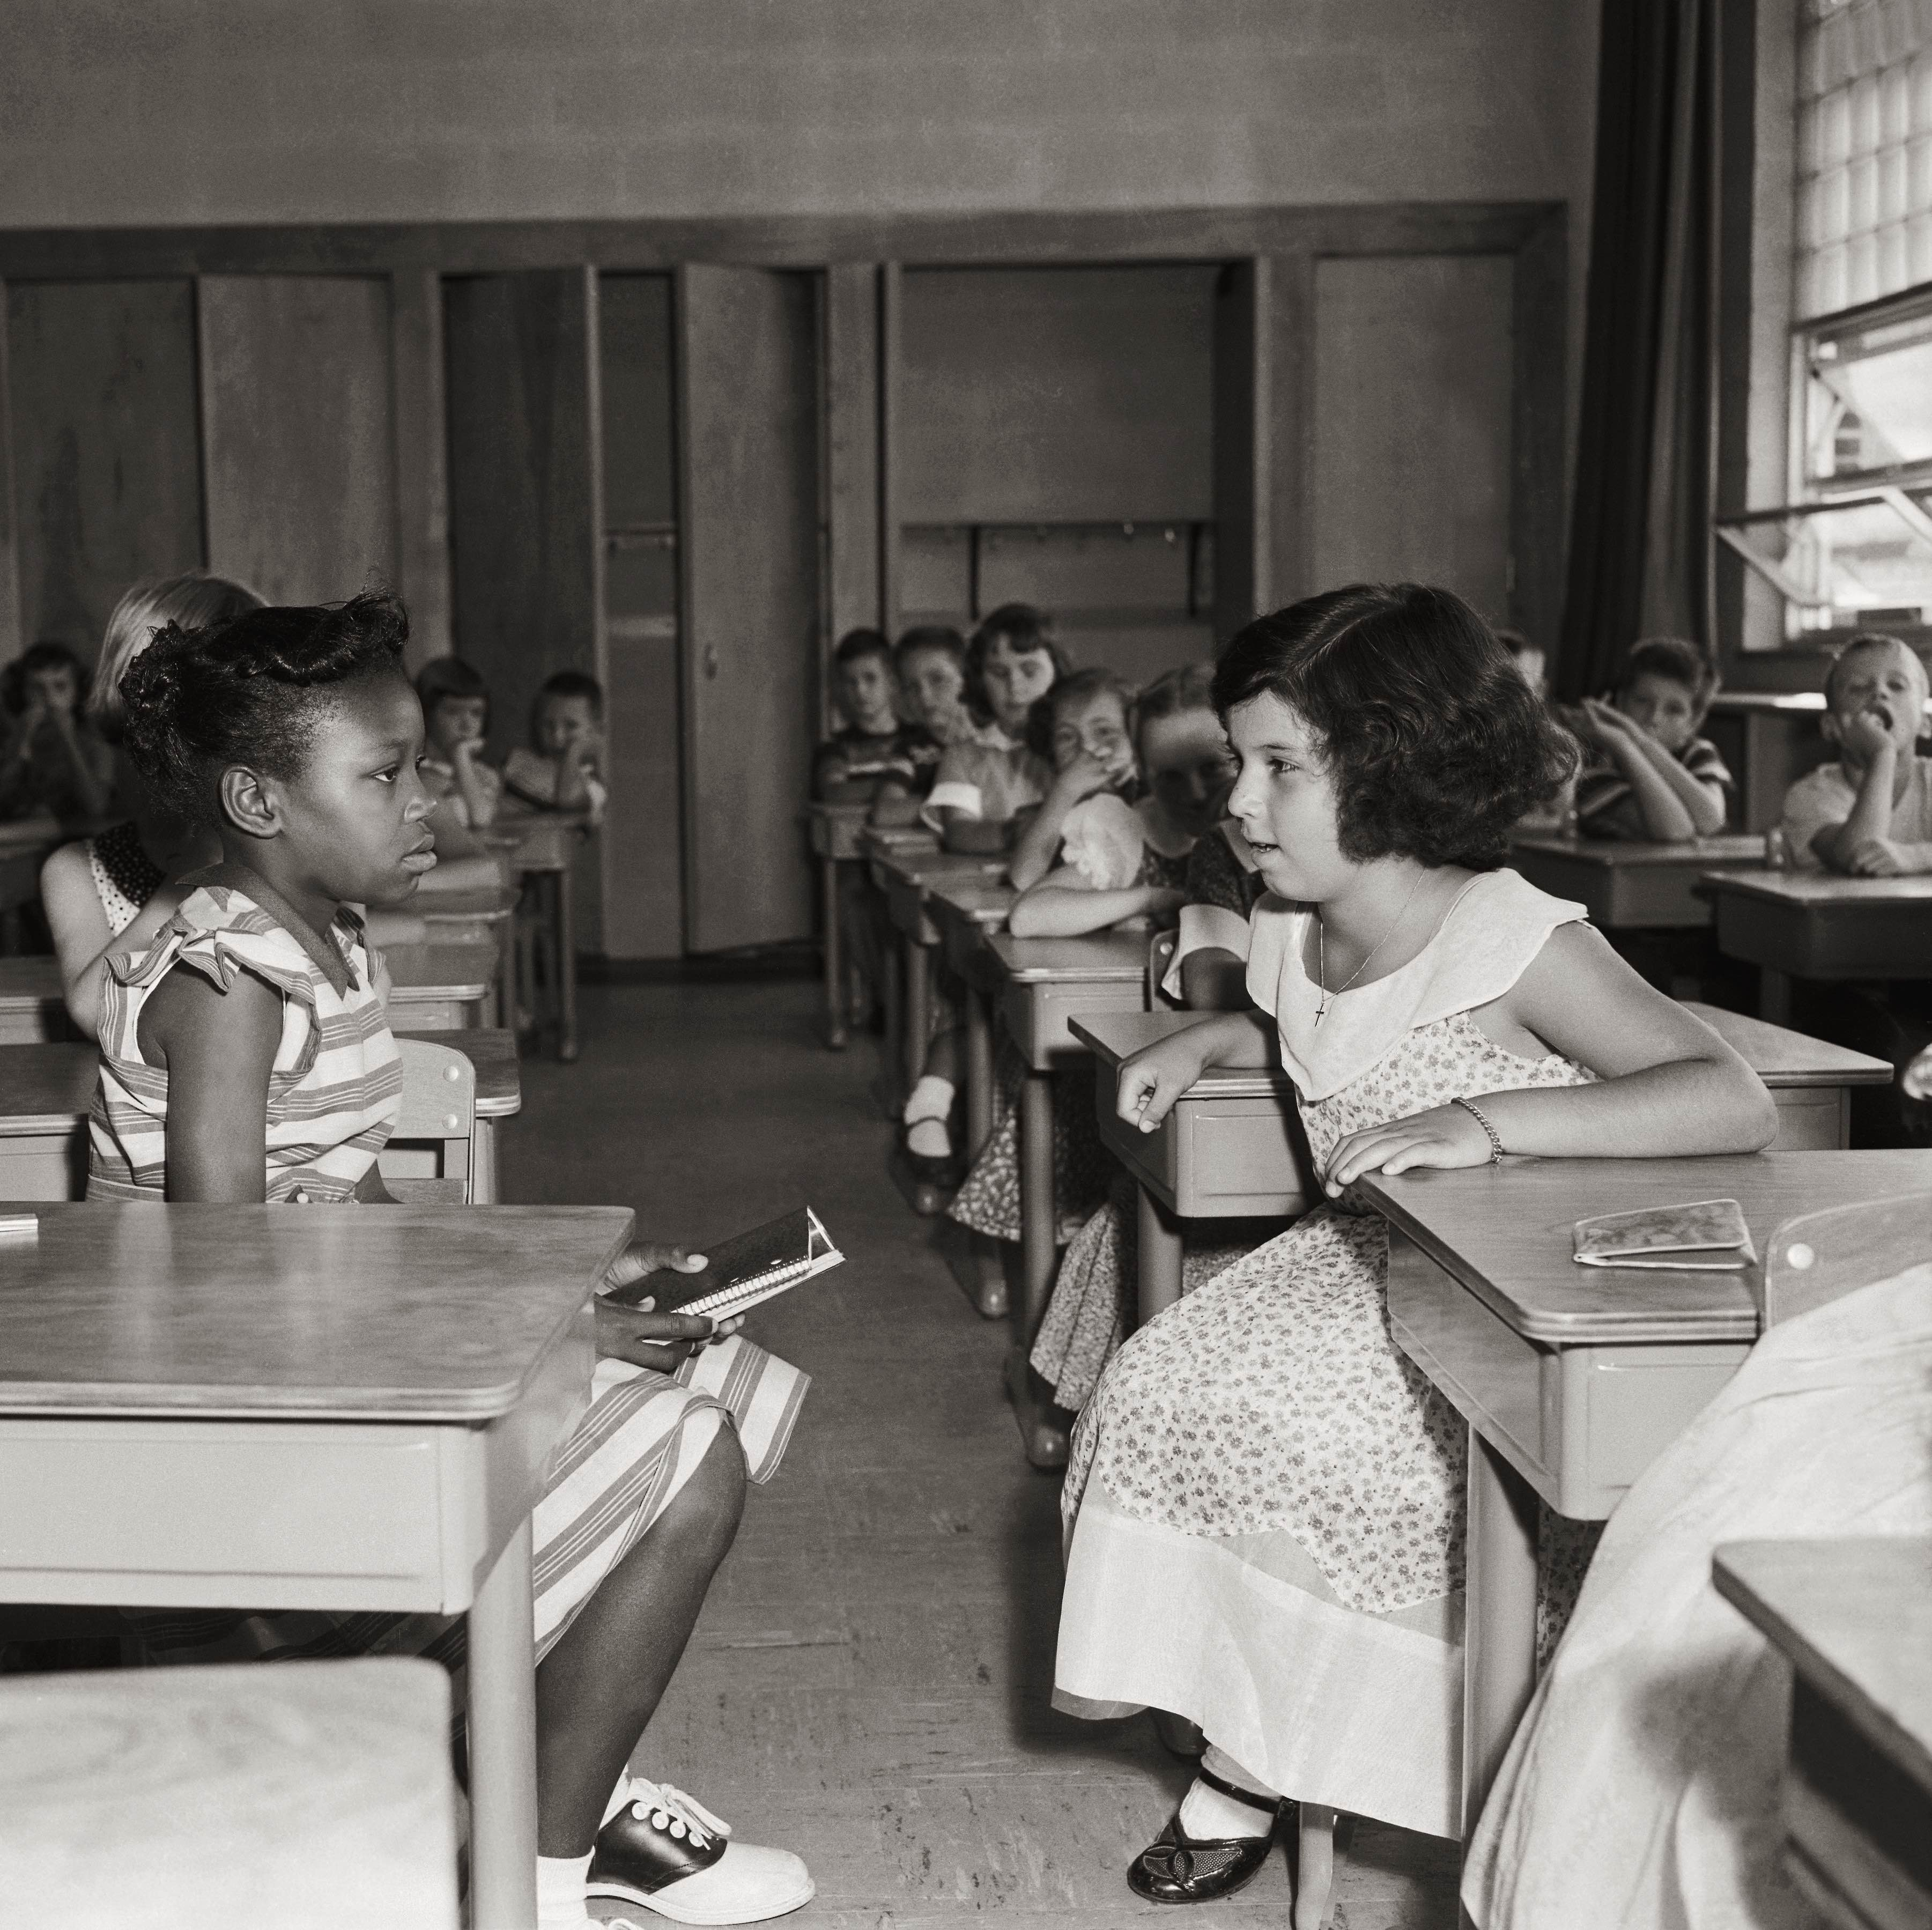 an analysis of the brown vs board of education case on racial segregation in public schools in the u Board of education decision that separate but equal schools for black children were unconstitutional, in washington on may 17, 1954 ap file get the think newsletter.